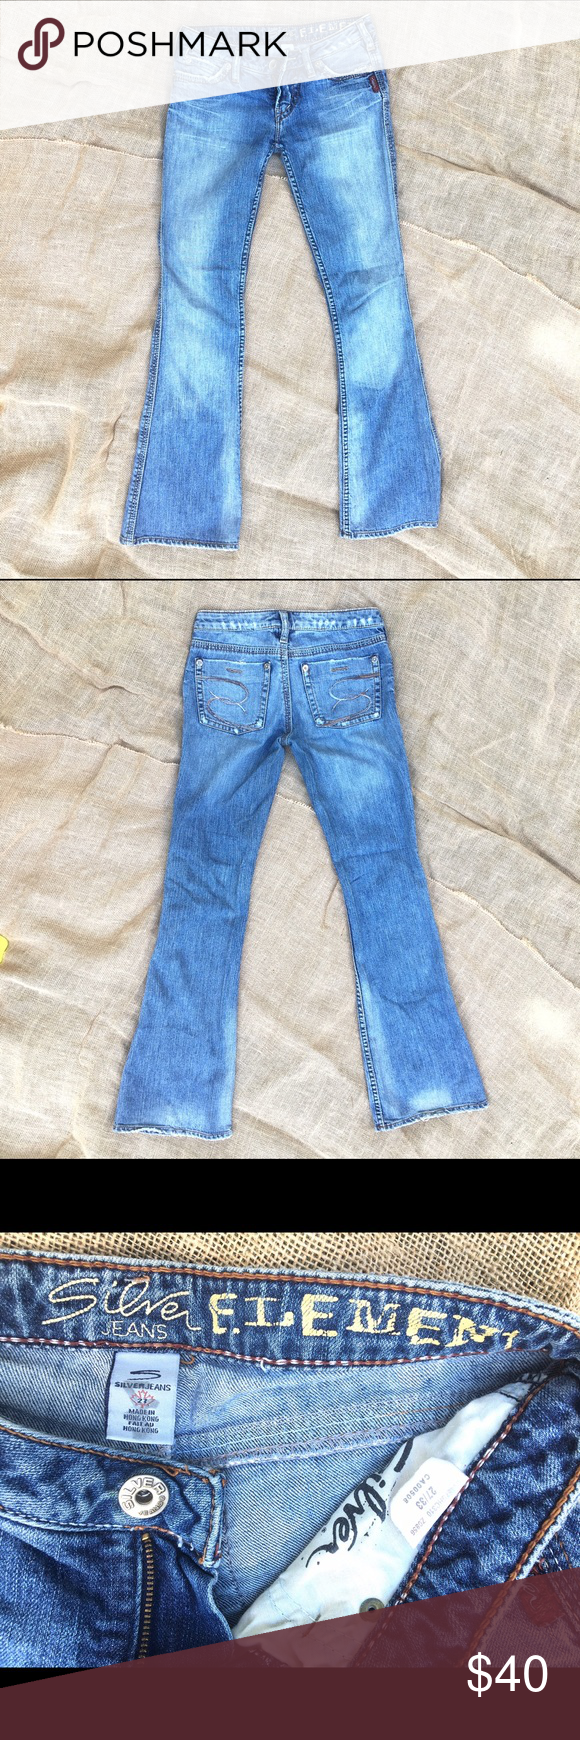 "Super cute, comfy, stylish Silver Jeans! Size 27! Fab Silver jeans in size 27 x 33""! Styles great with anything in your closet! Great condition! Silver Jeans Jeans Boot Cut"